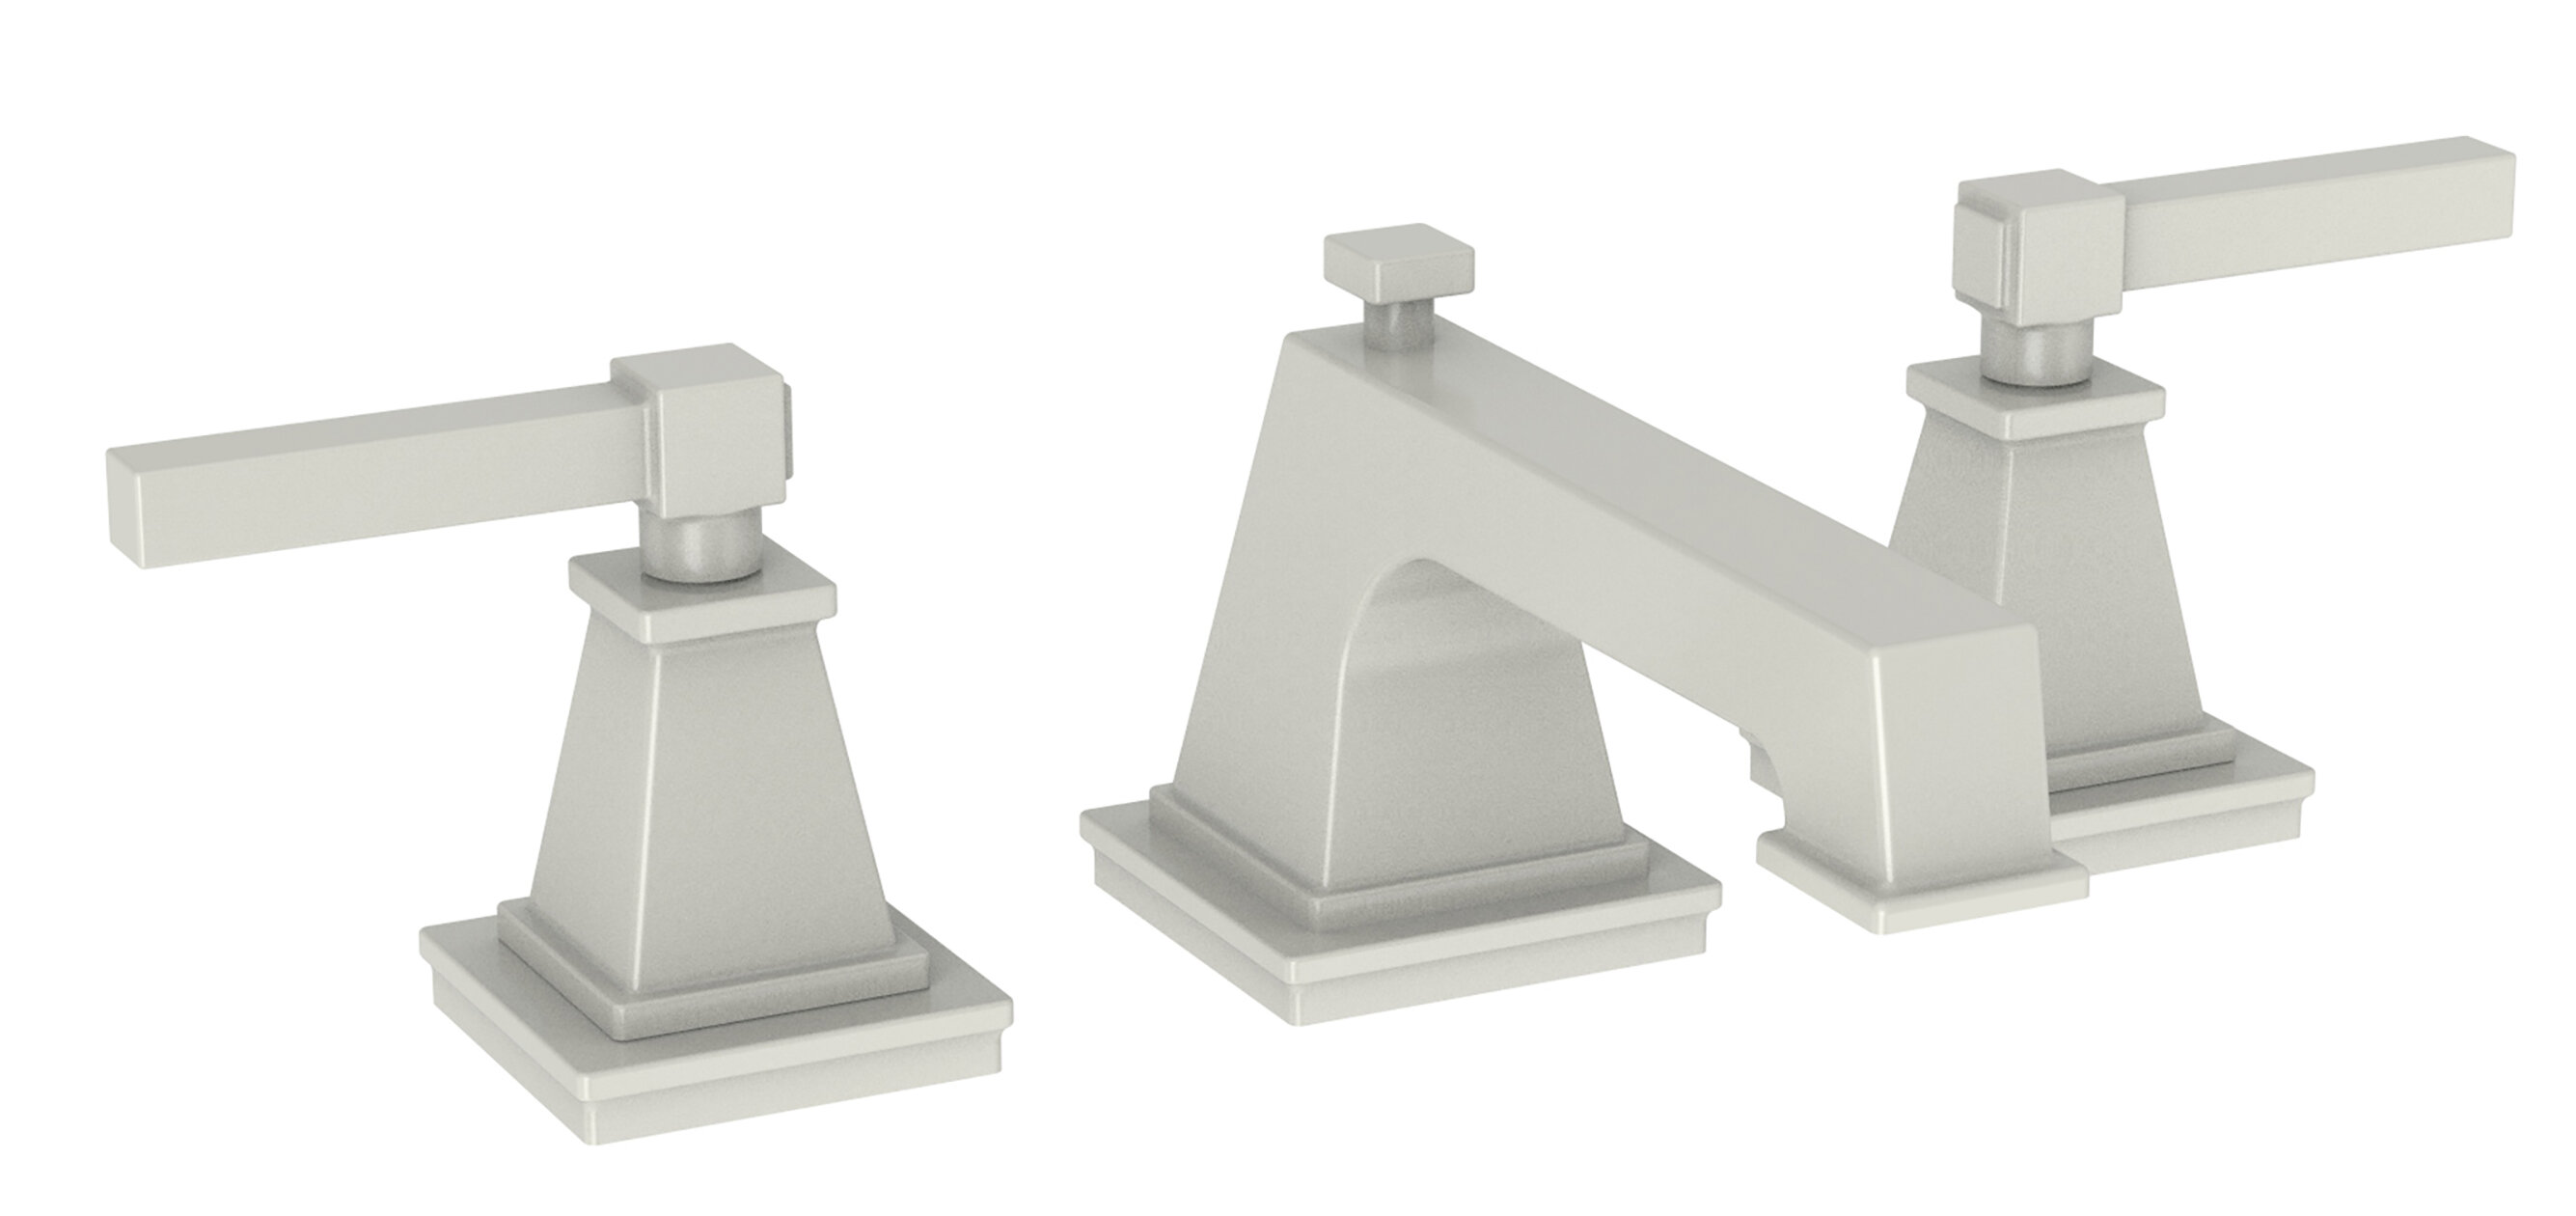 Newport Brass Malvina Lavatory Widespread Bathroom Faucet With Drain Assembly Perigold